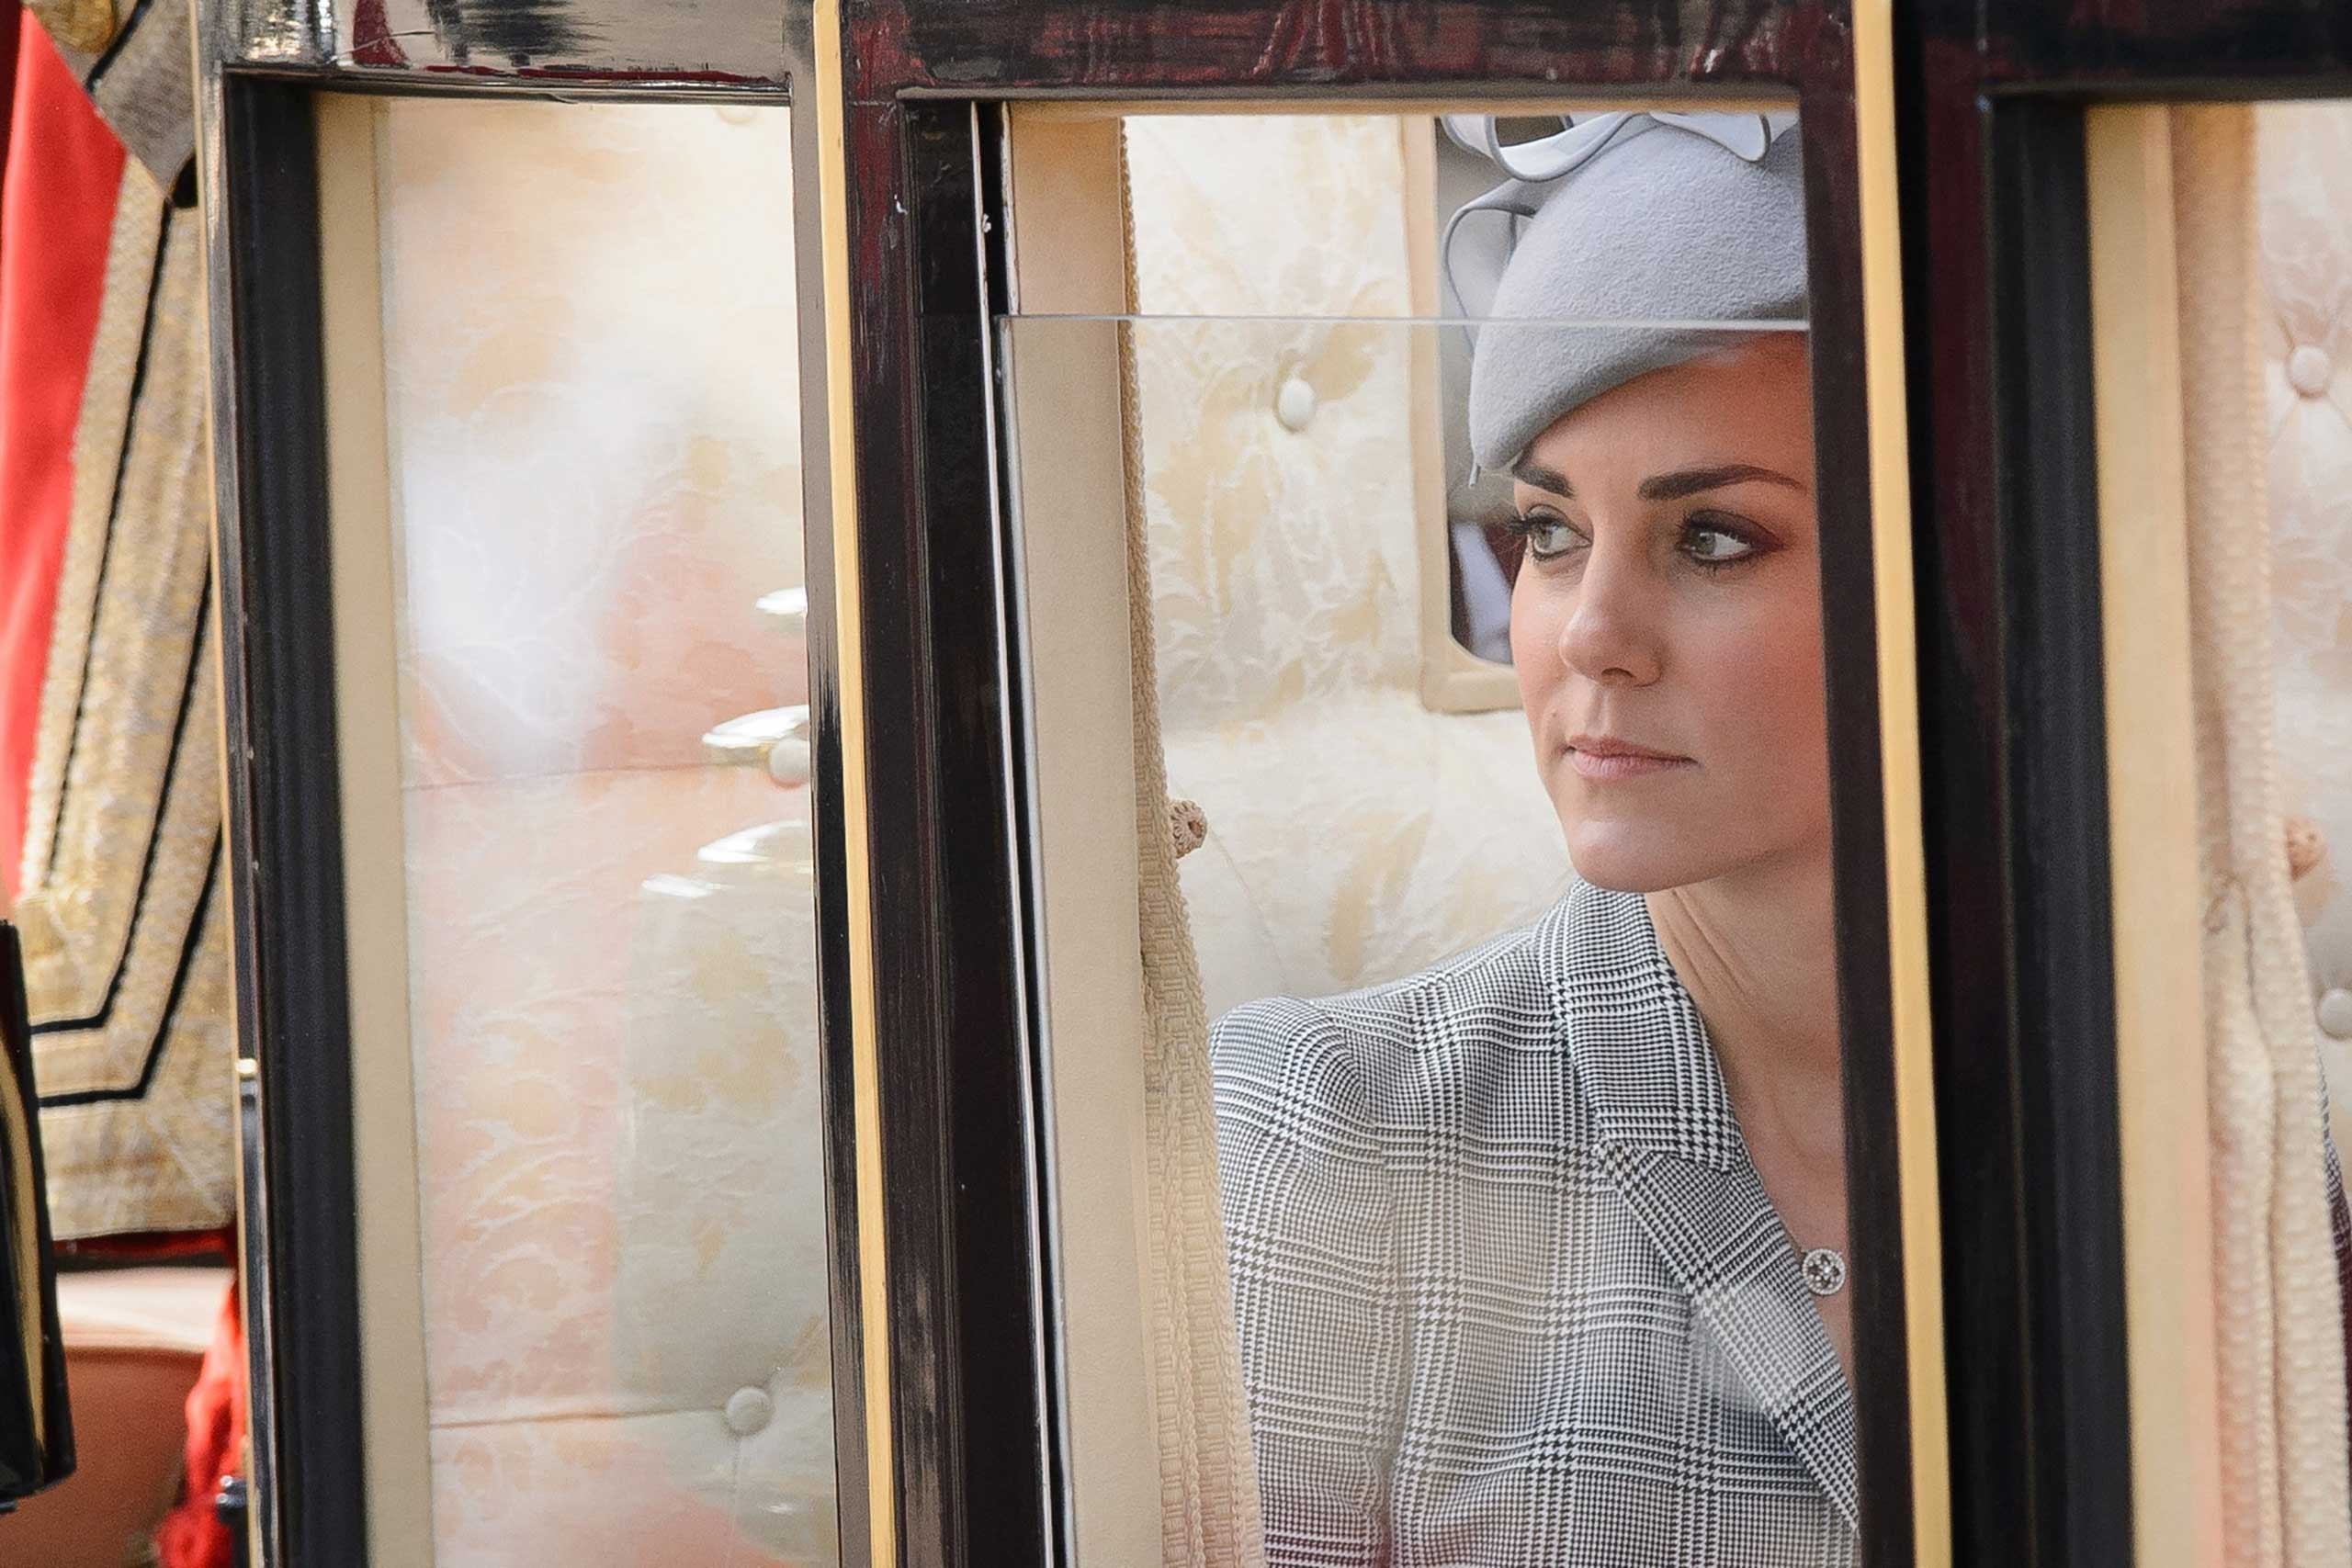 Oct. 21, 2014.  Britain's Catherine, Duchess of Cambridge, takes her seat in a State Carriage for the procession to Buckingham Palace as part of the welcome ceremony for Singapore's President Tony Tan Keng Yam at the start of a state visit at Horse Guards Parade in London, England.  The President is at the beginning of his four day stay during which he will hold a bilateral meeting with Prime Minister David Cameron.